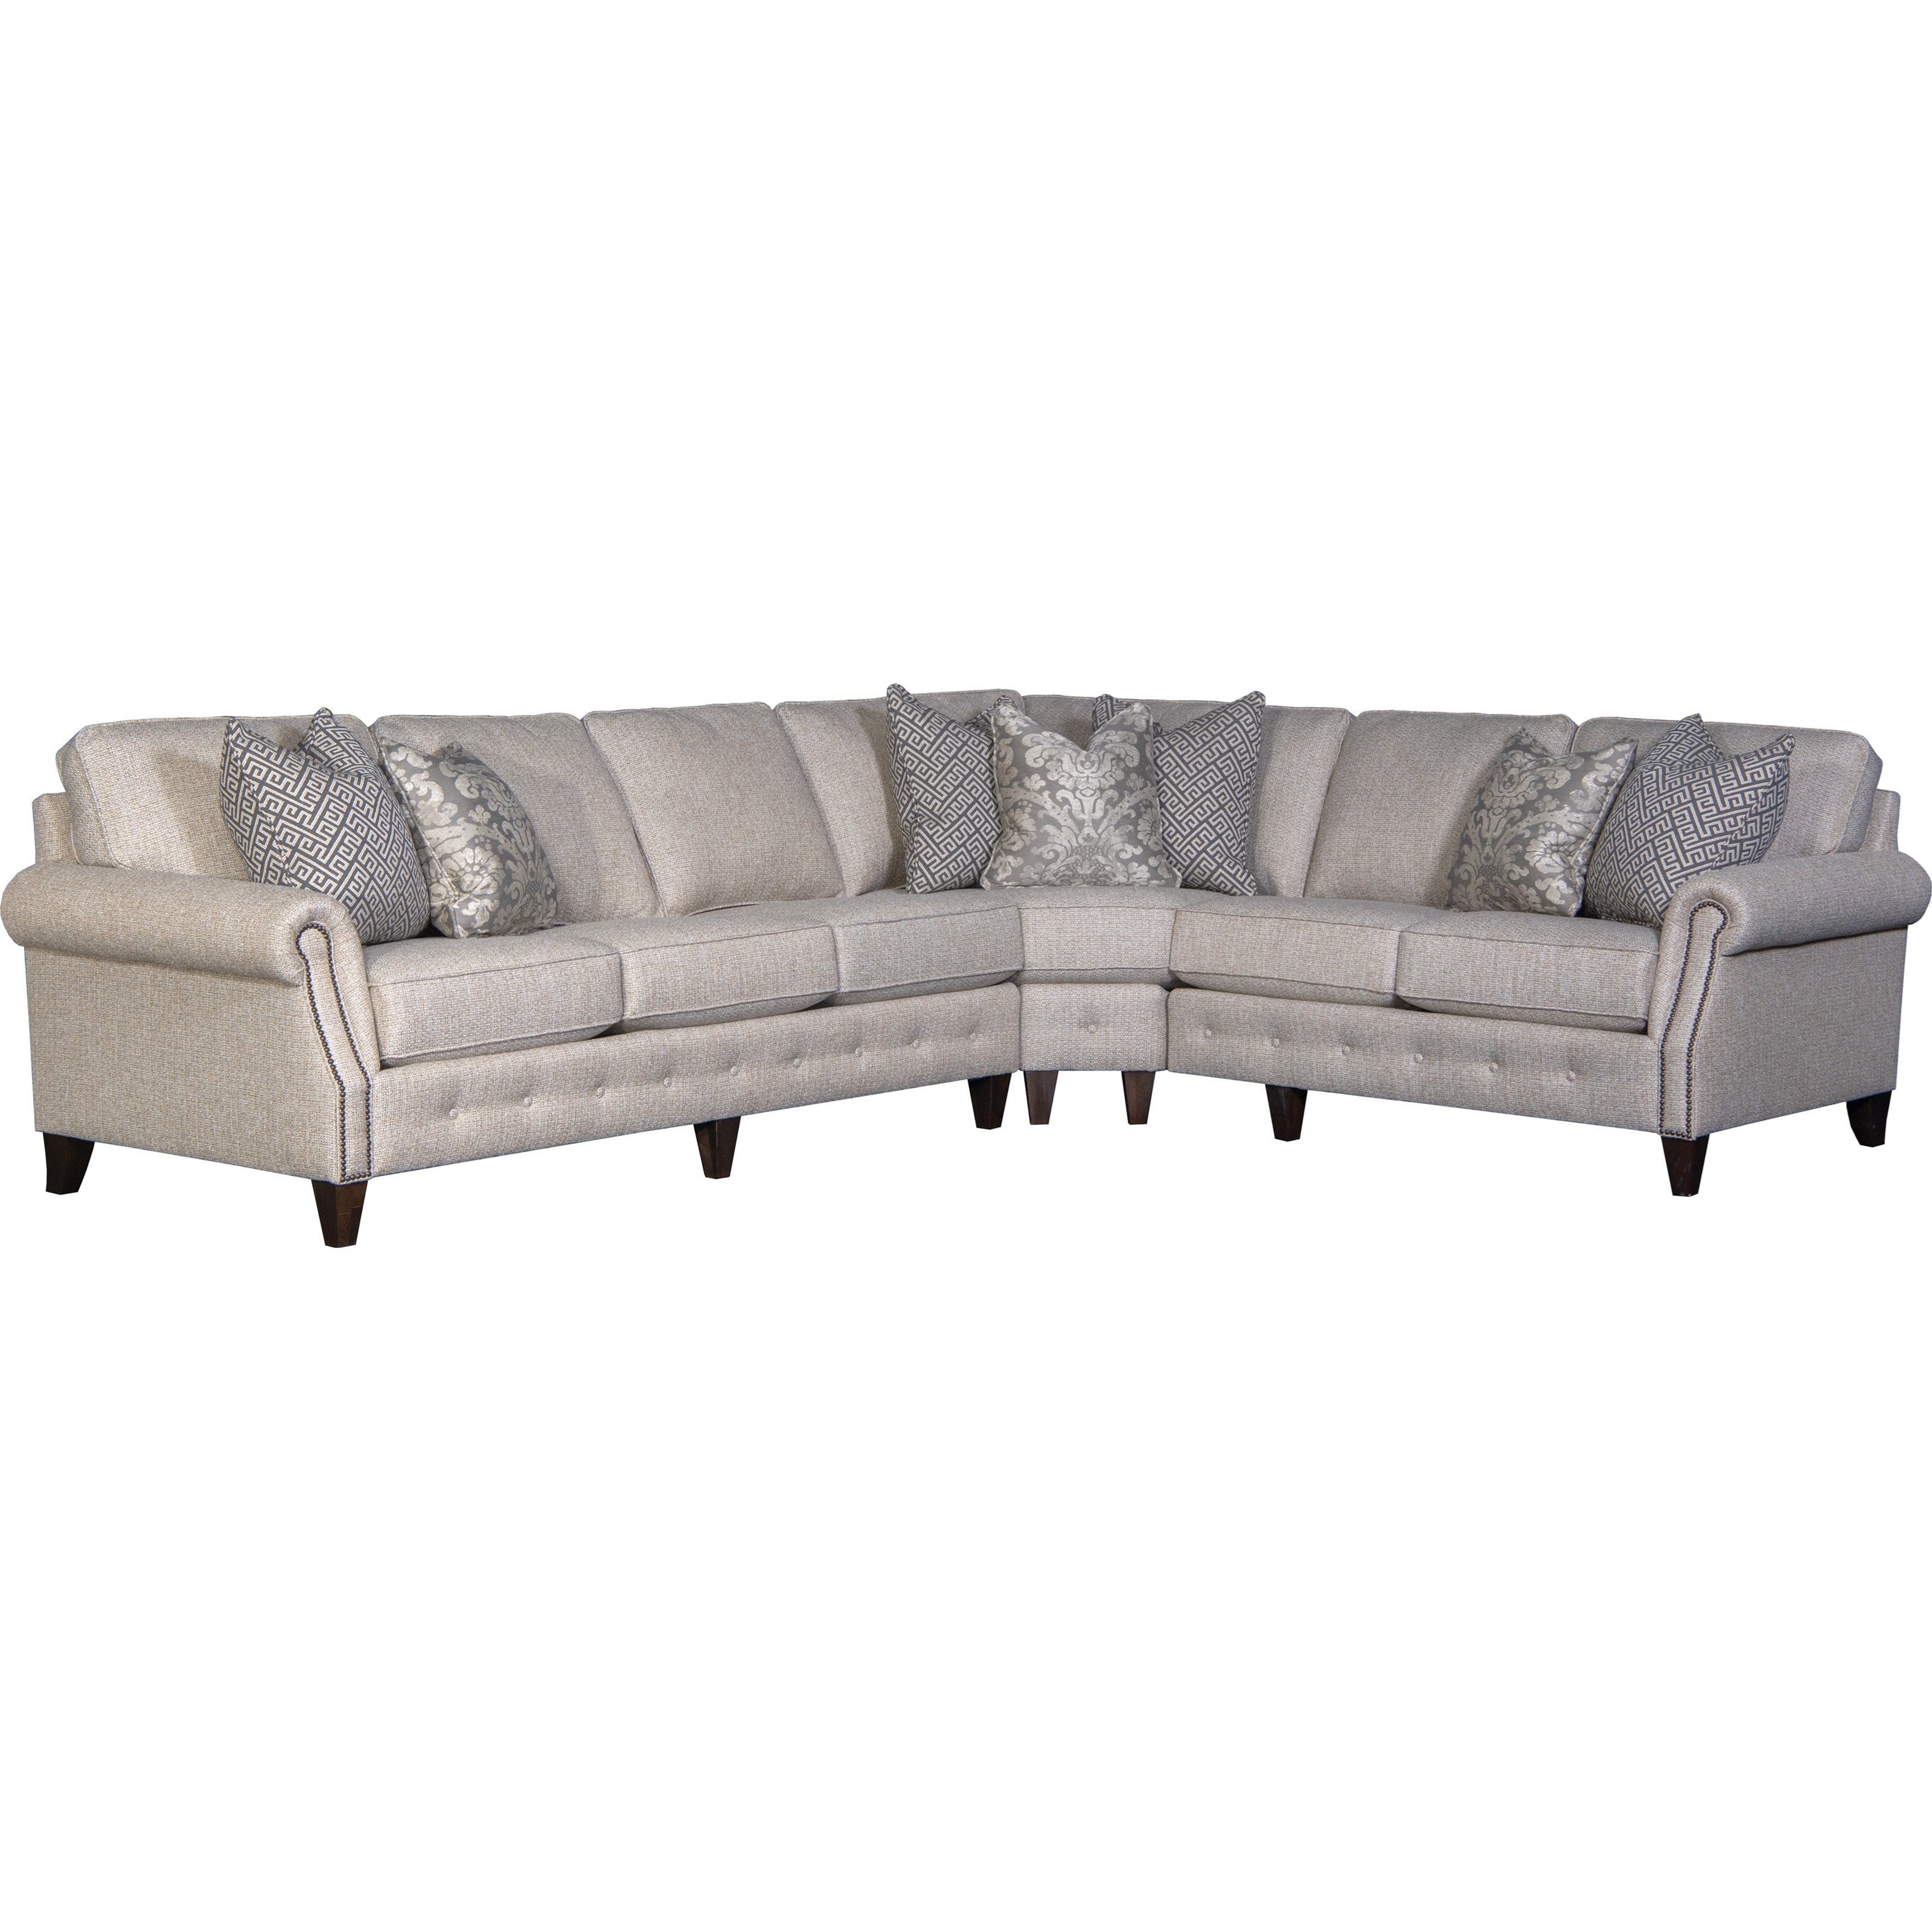 4040 5-Seat Sectional Sofa w/ LAF Sofa by Mayo at Story & Lee Furniture